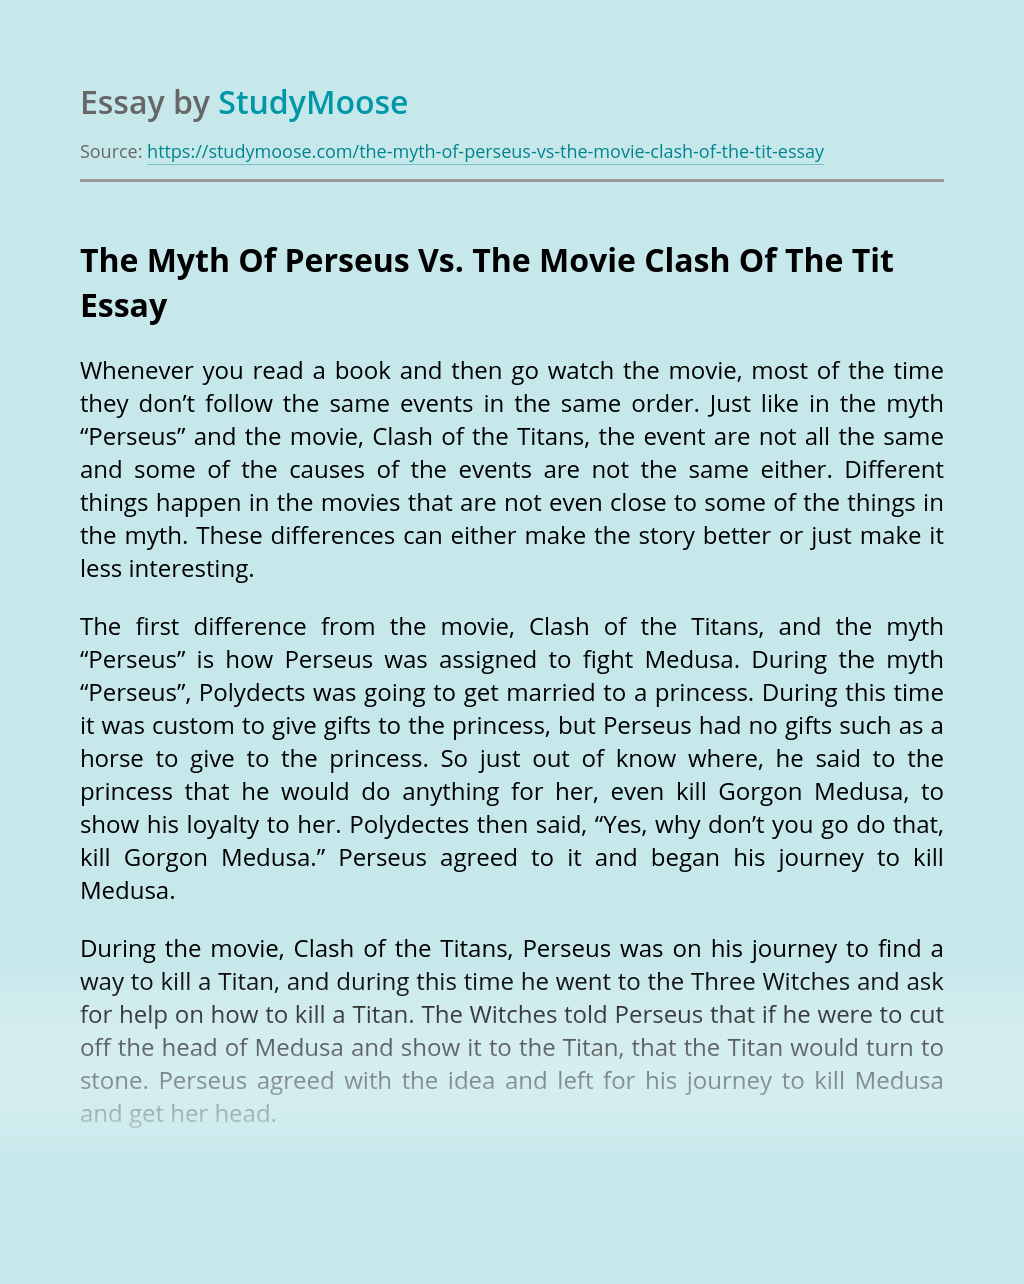 The Myth Of Perseus Vs. The Movie Clash Of The Tit